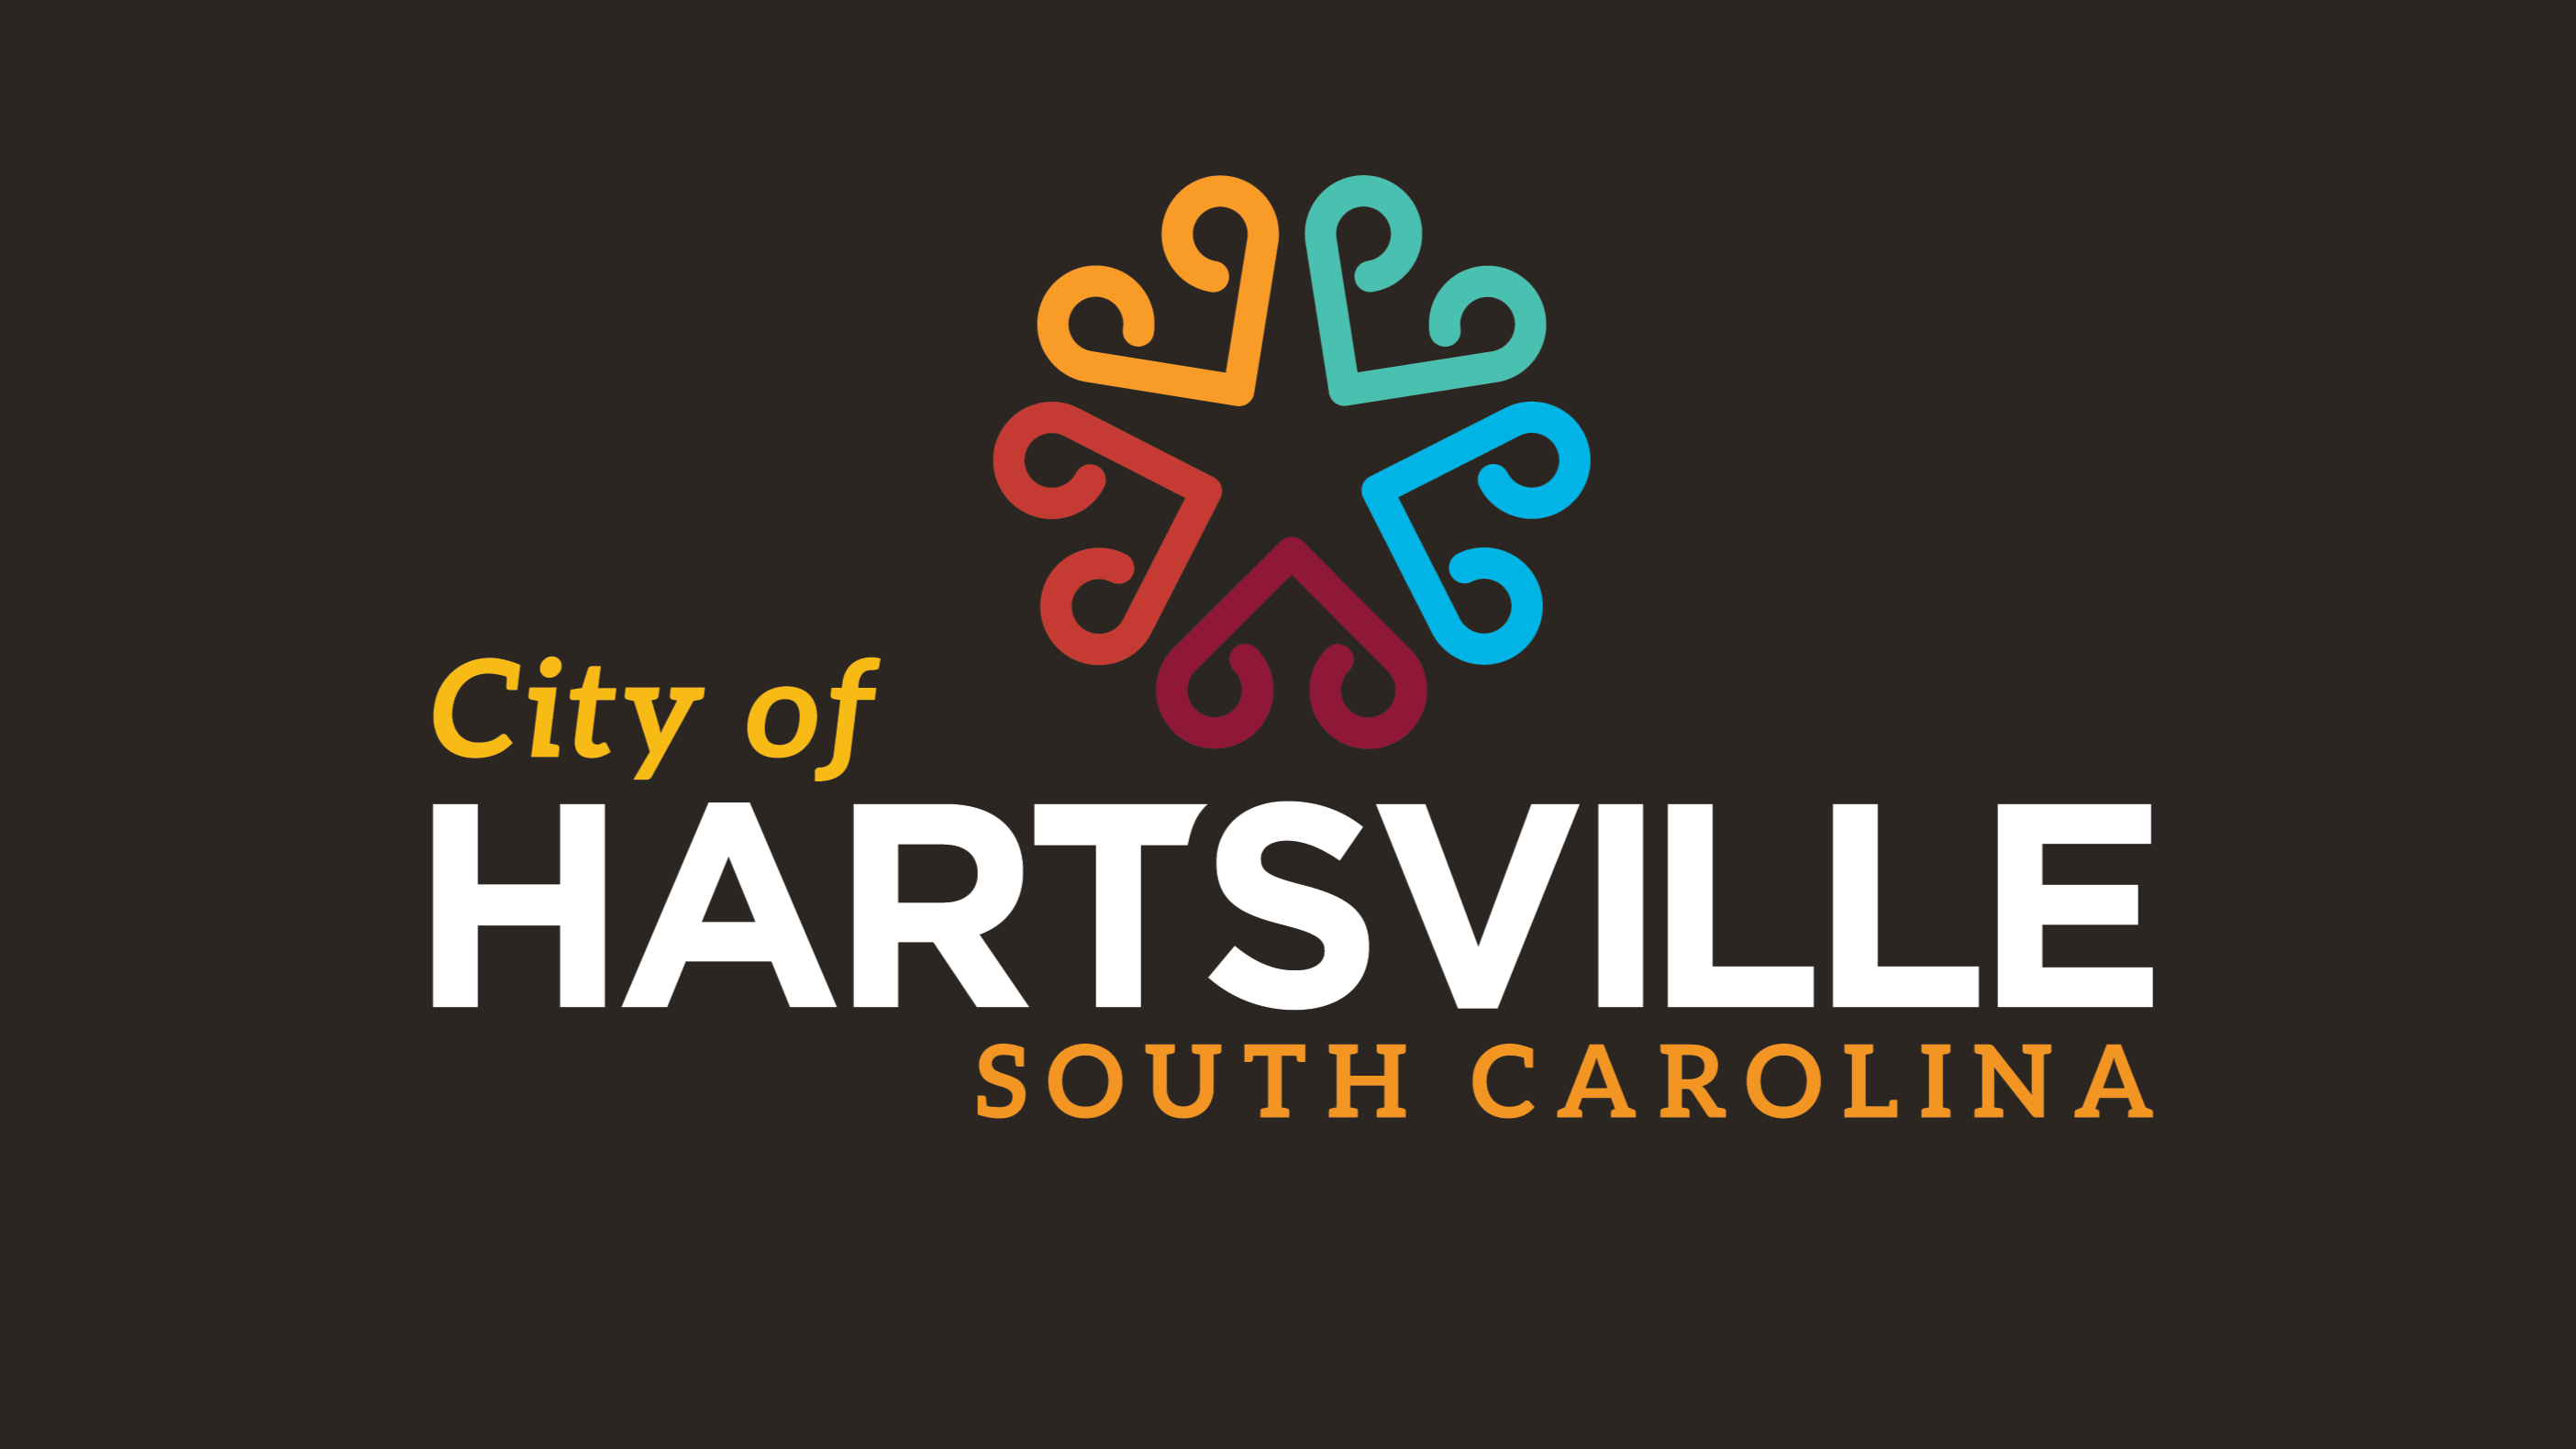 City of Hartsville logo on a dark background.